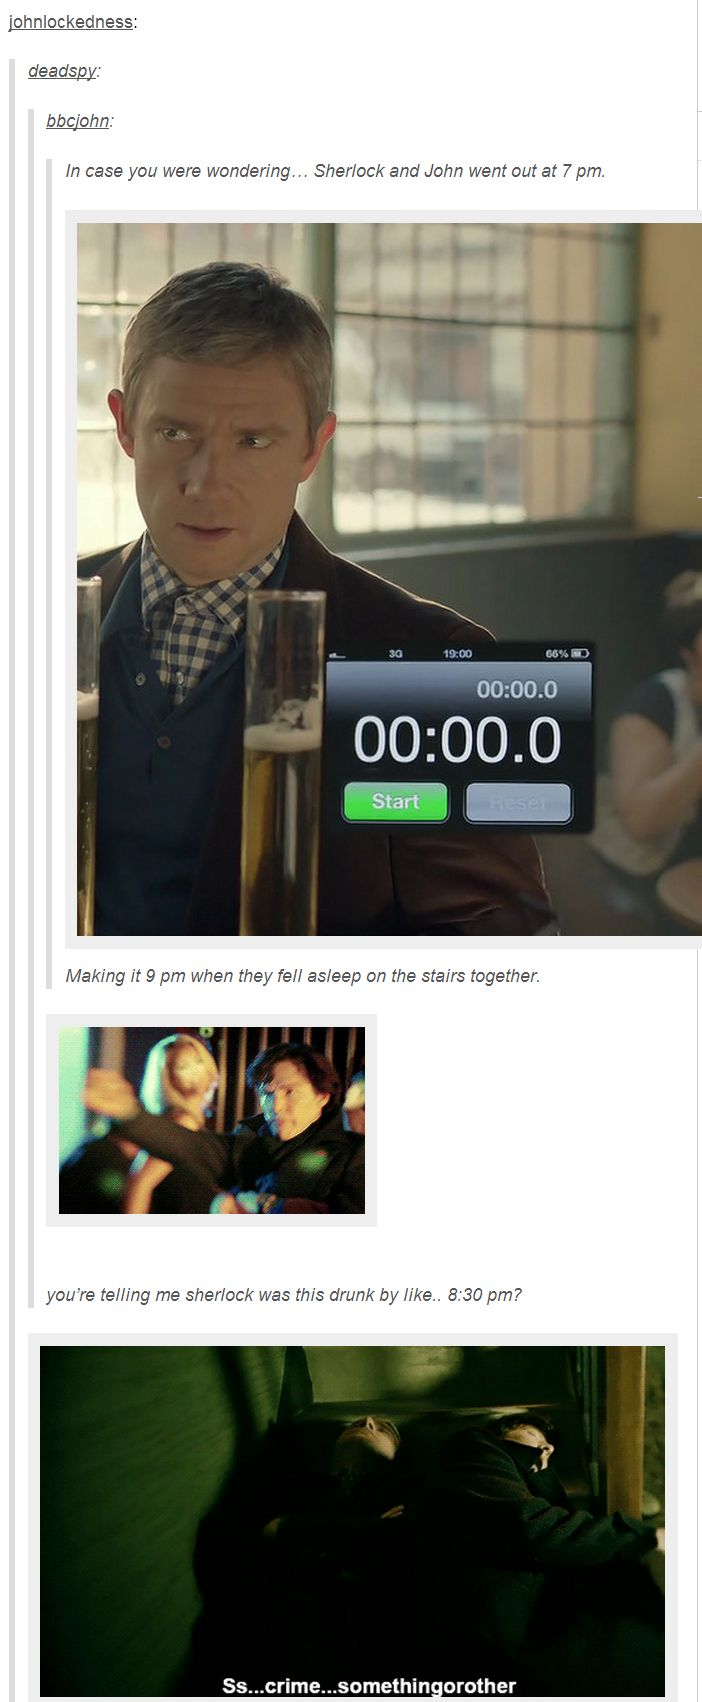 Sherlock and John are lightweights <-- I'd still wanna party with them :) Sure. They're fun drunks.